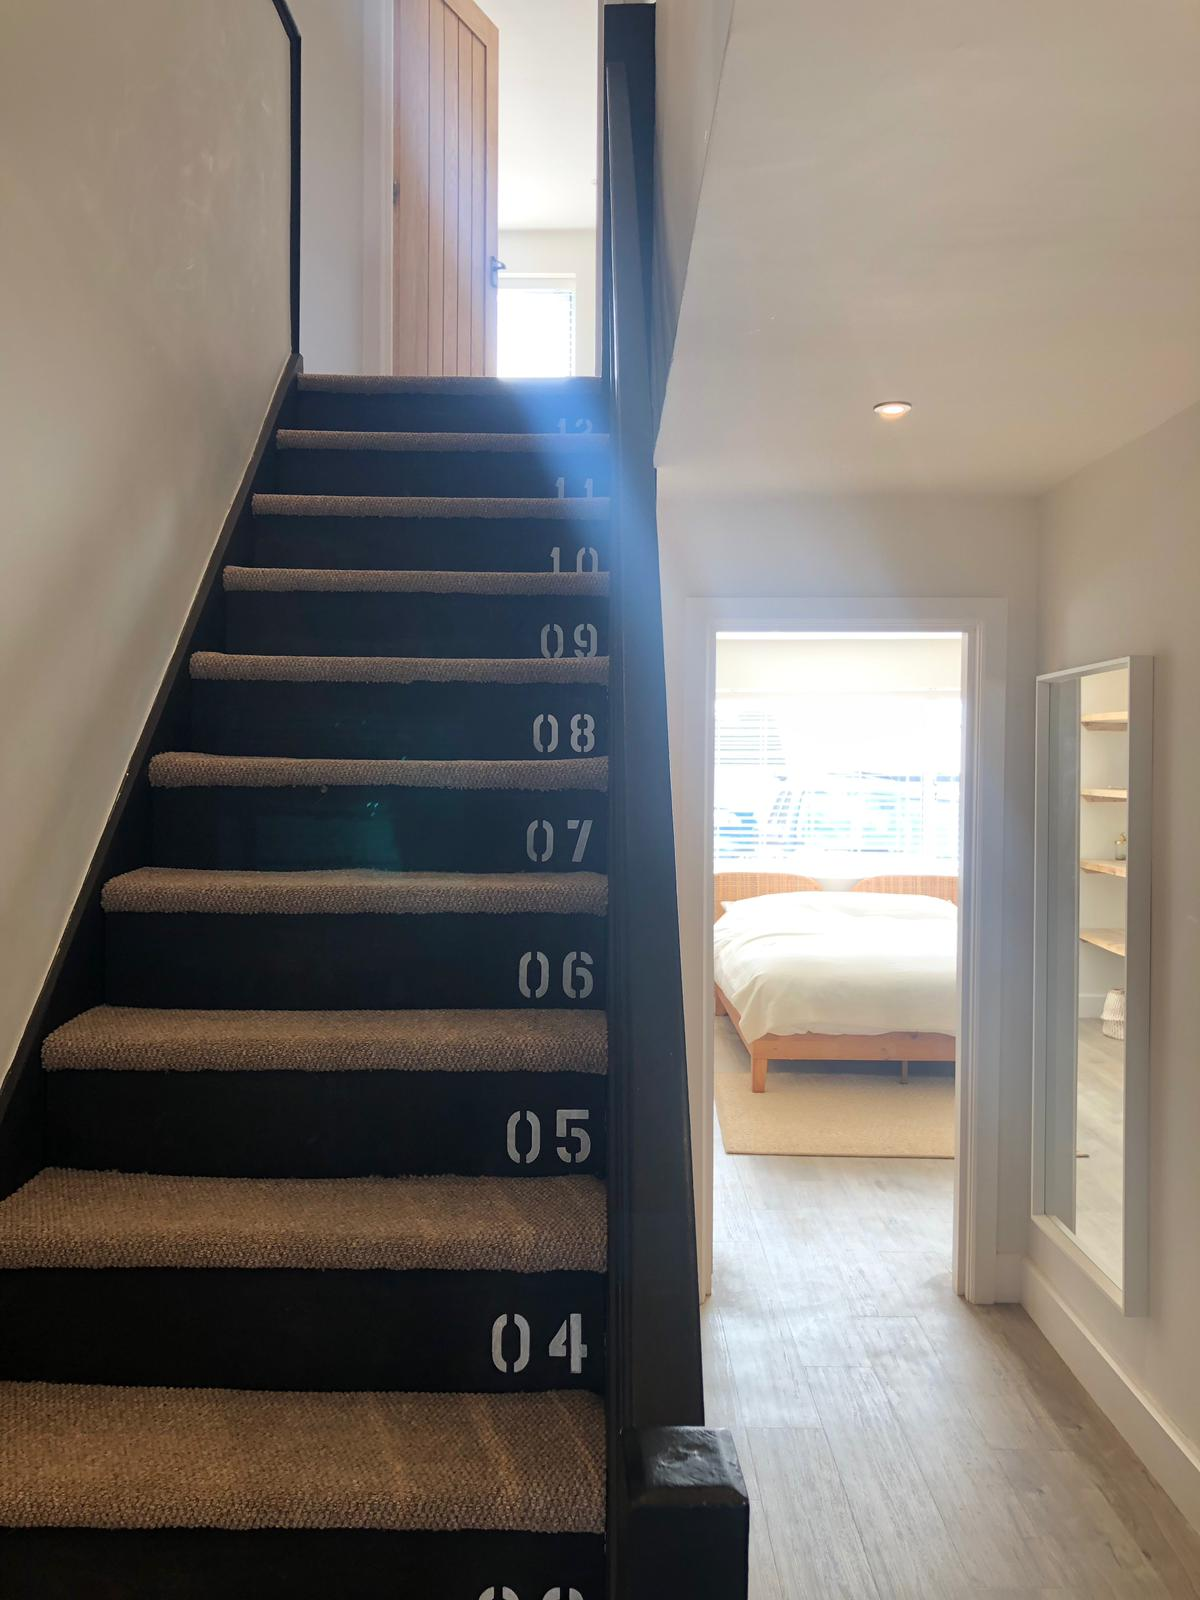 The Nautical Numbered Stairs